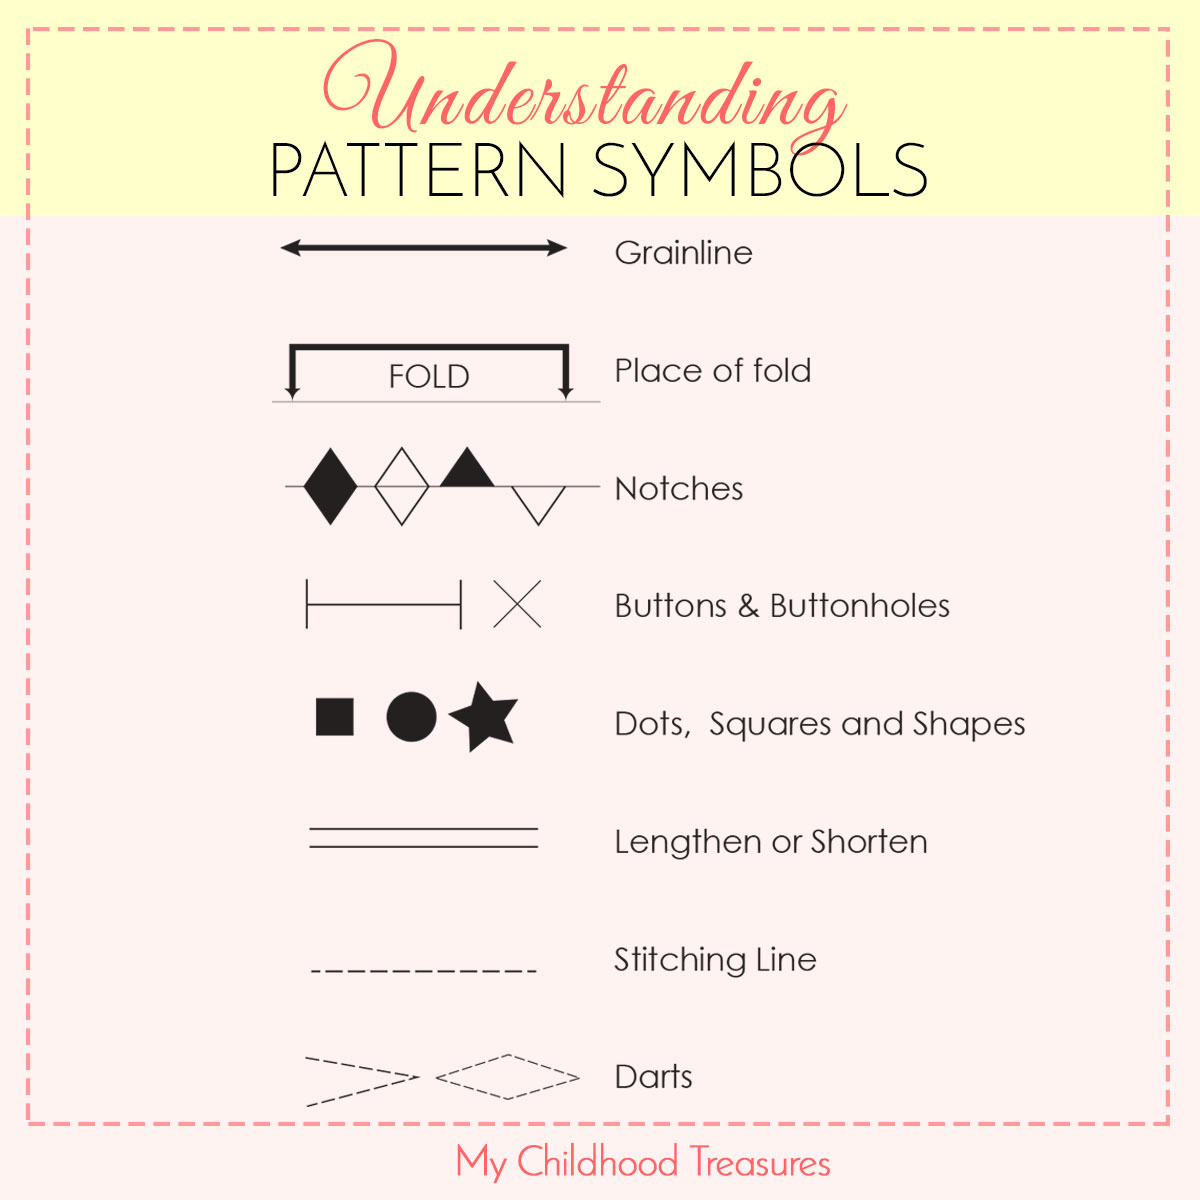 sewing-pattern-symbols